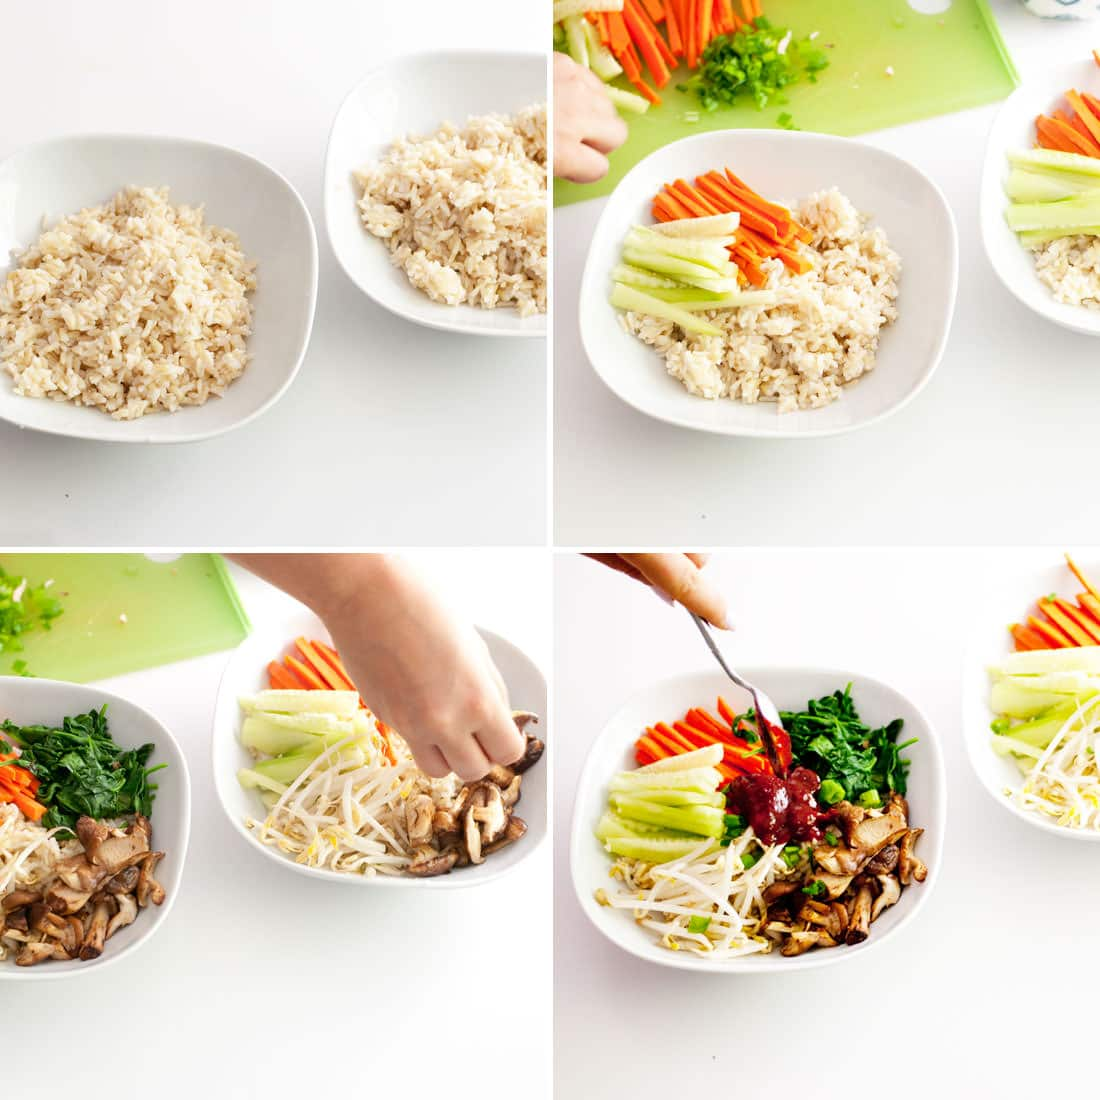 four step process to assembling rice bowl. brown rice in white bowl, hand adding vegetables, hand spooning sauce on top.